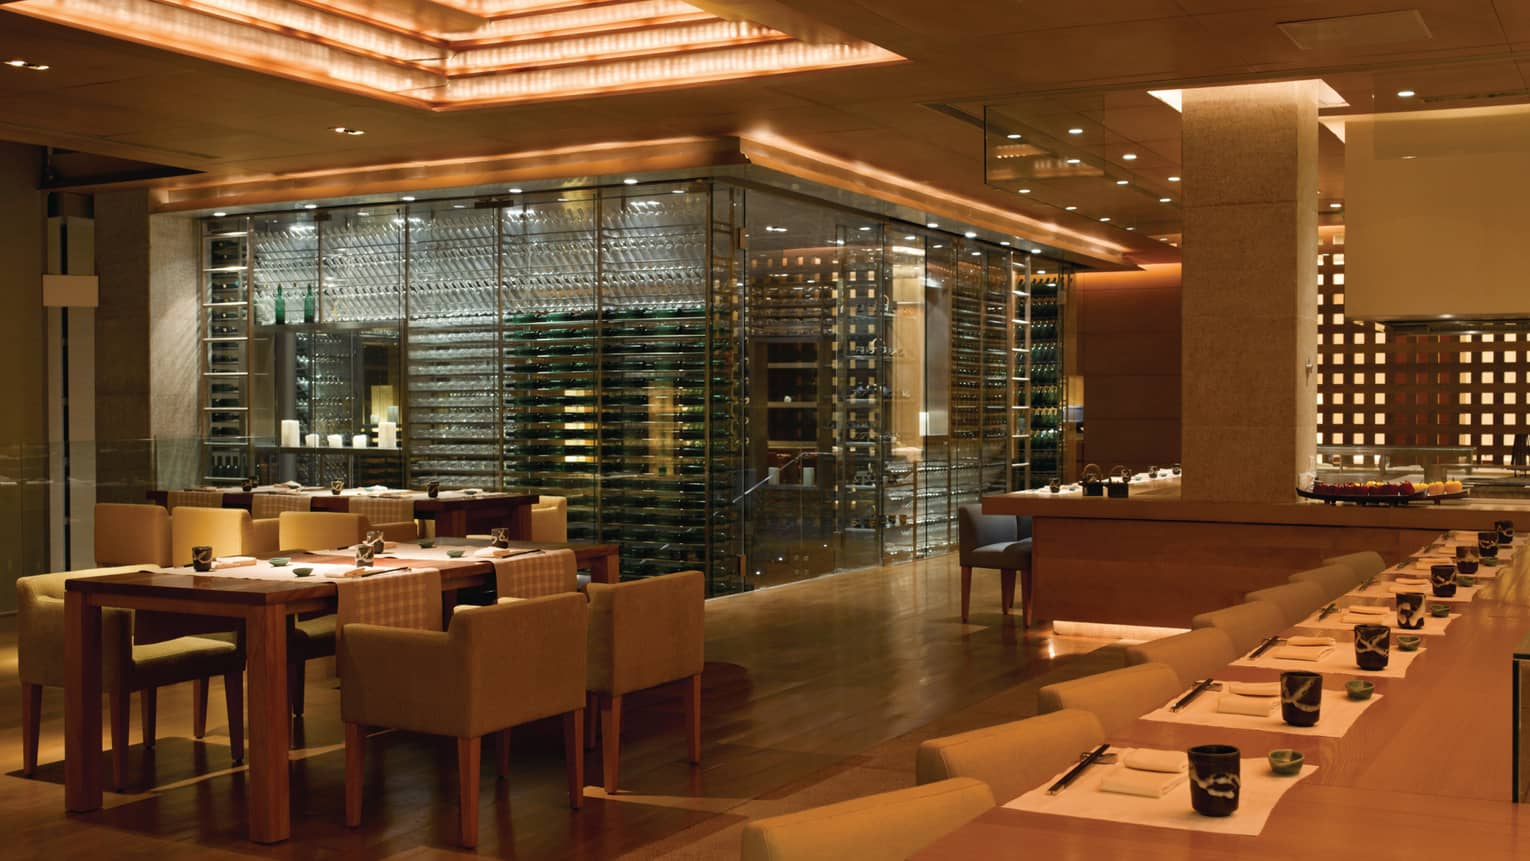 San Qi Upper Level dining room, large glass room with wine cellar racks, glasses